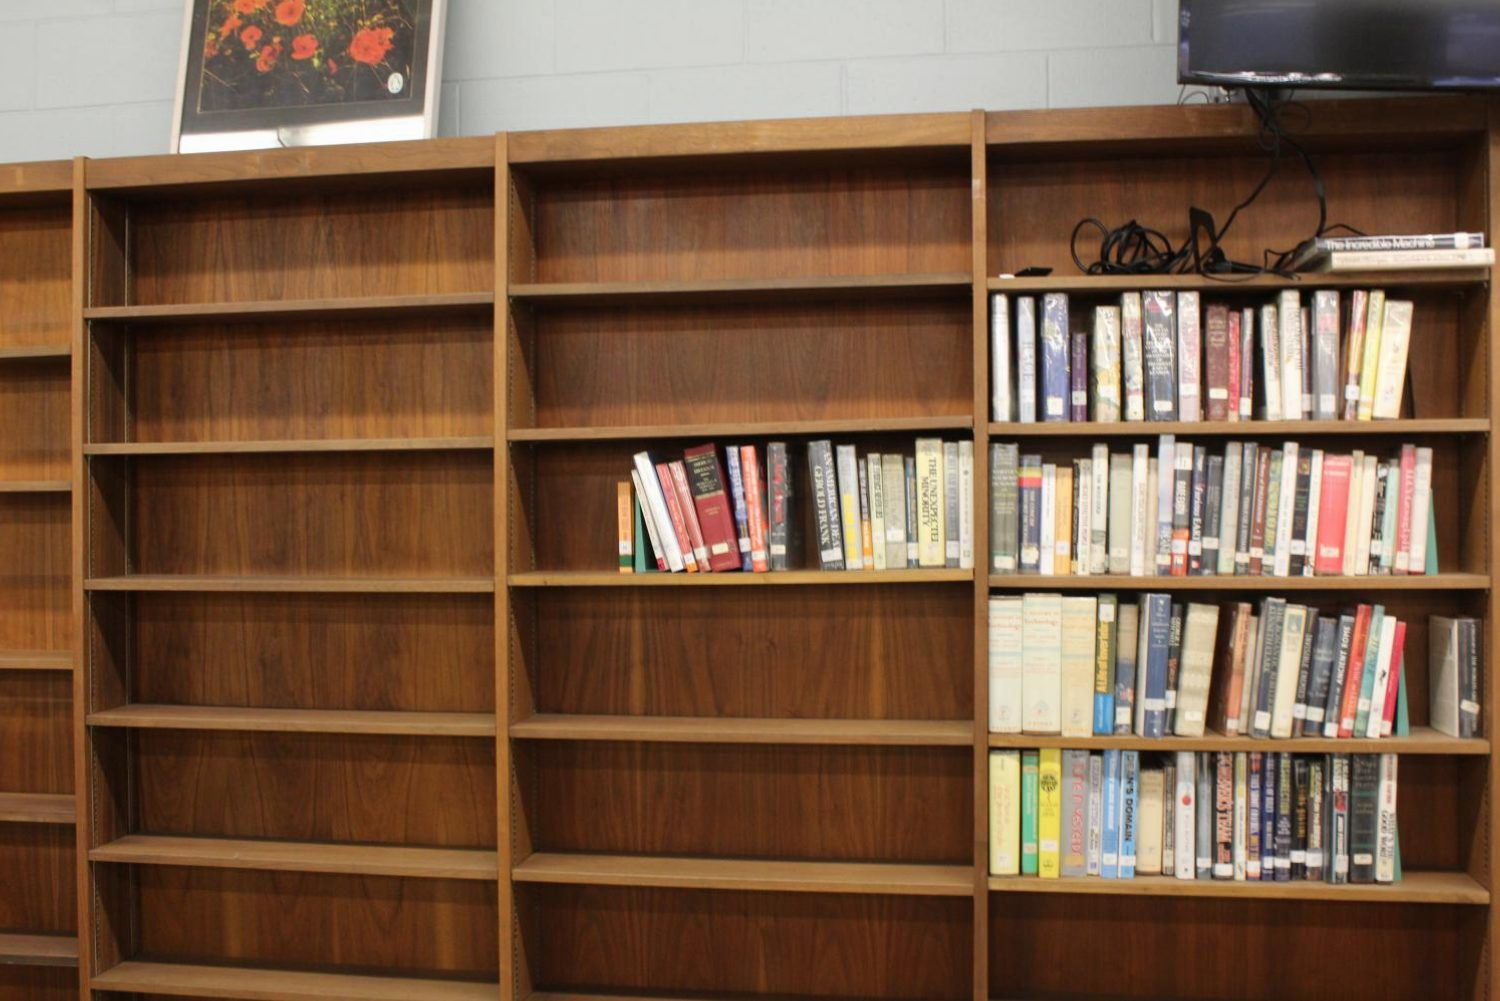 Because of the library being turned into a media center, Colonia High no longer has many books in the media center.